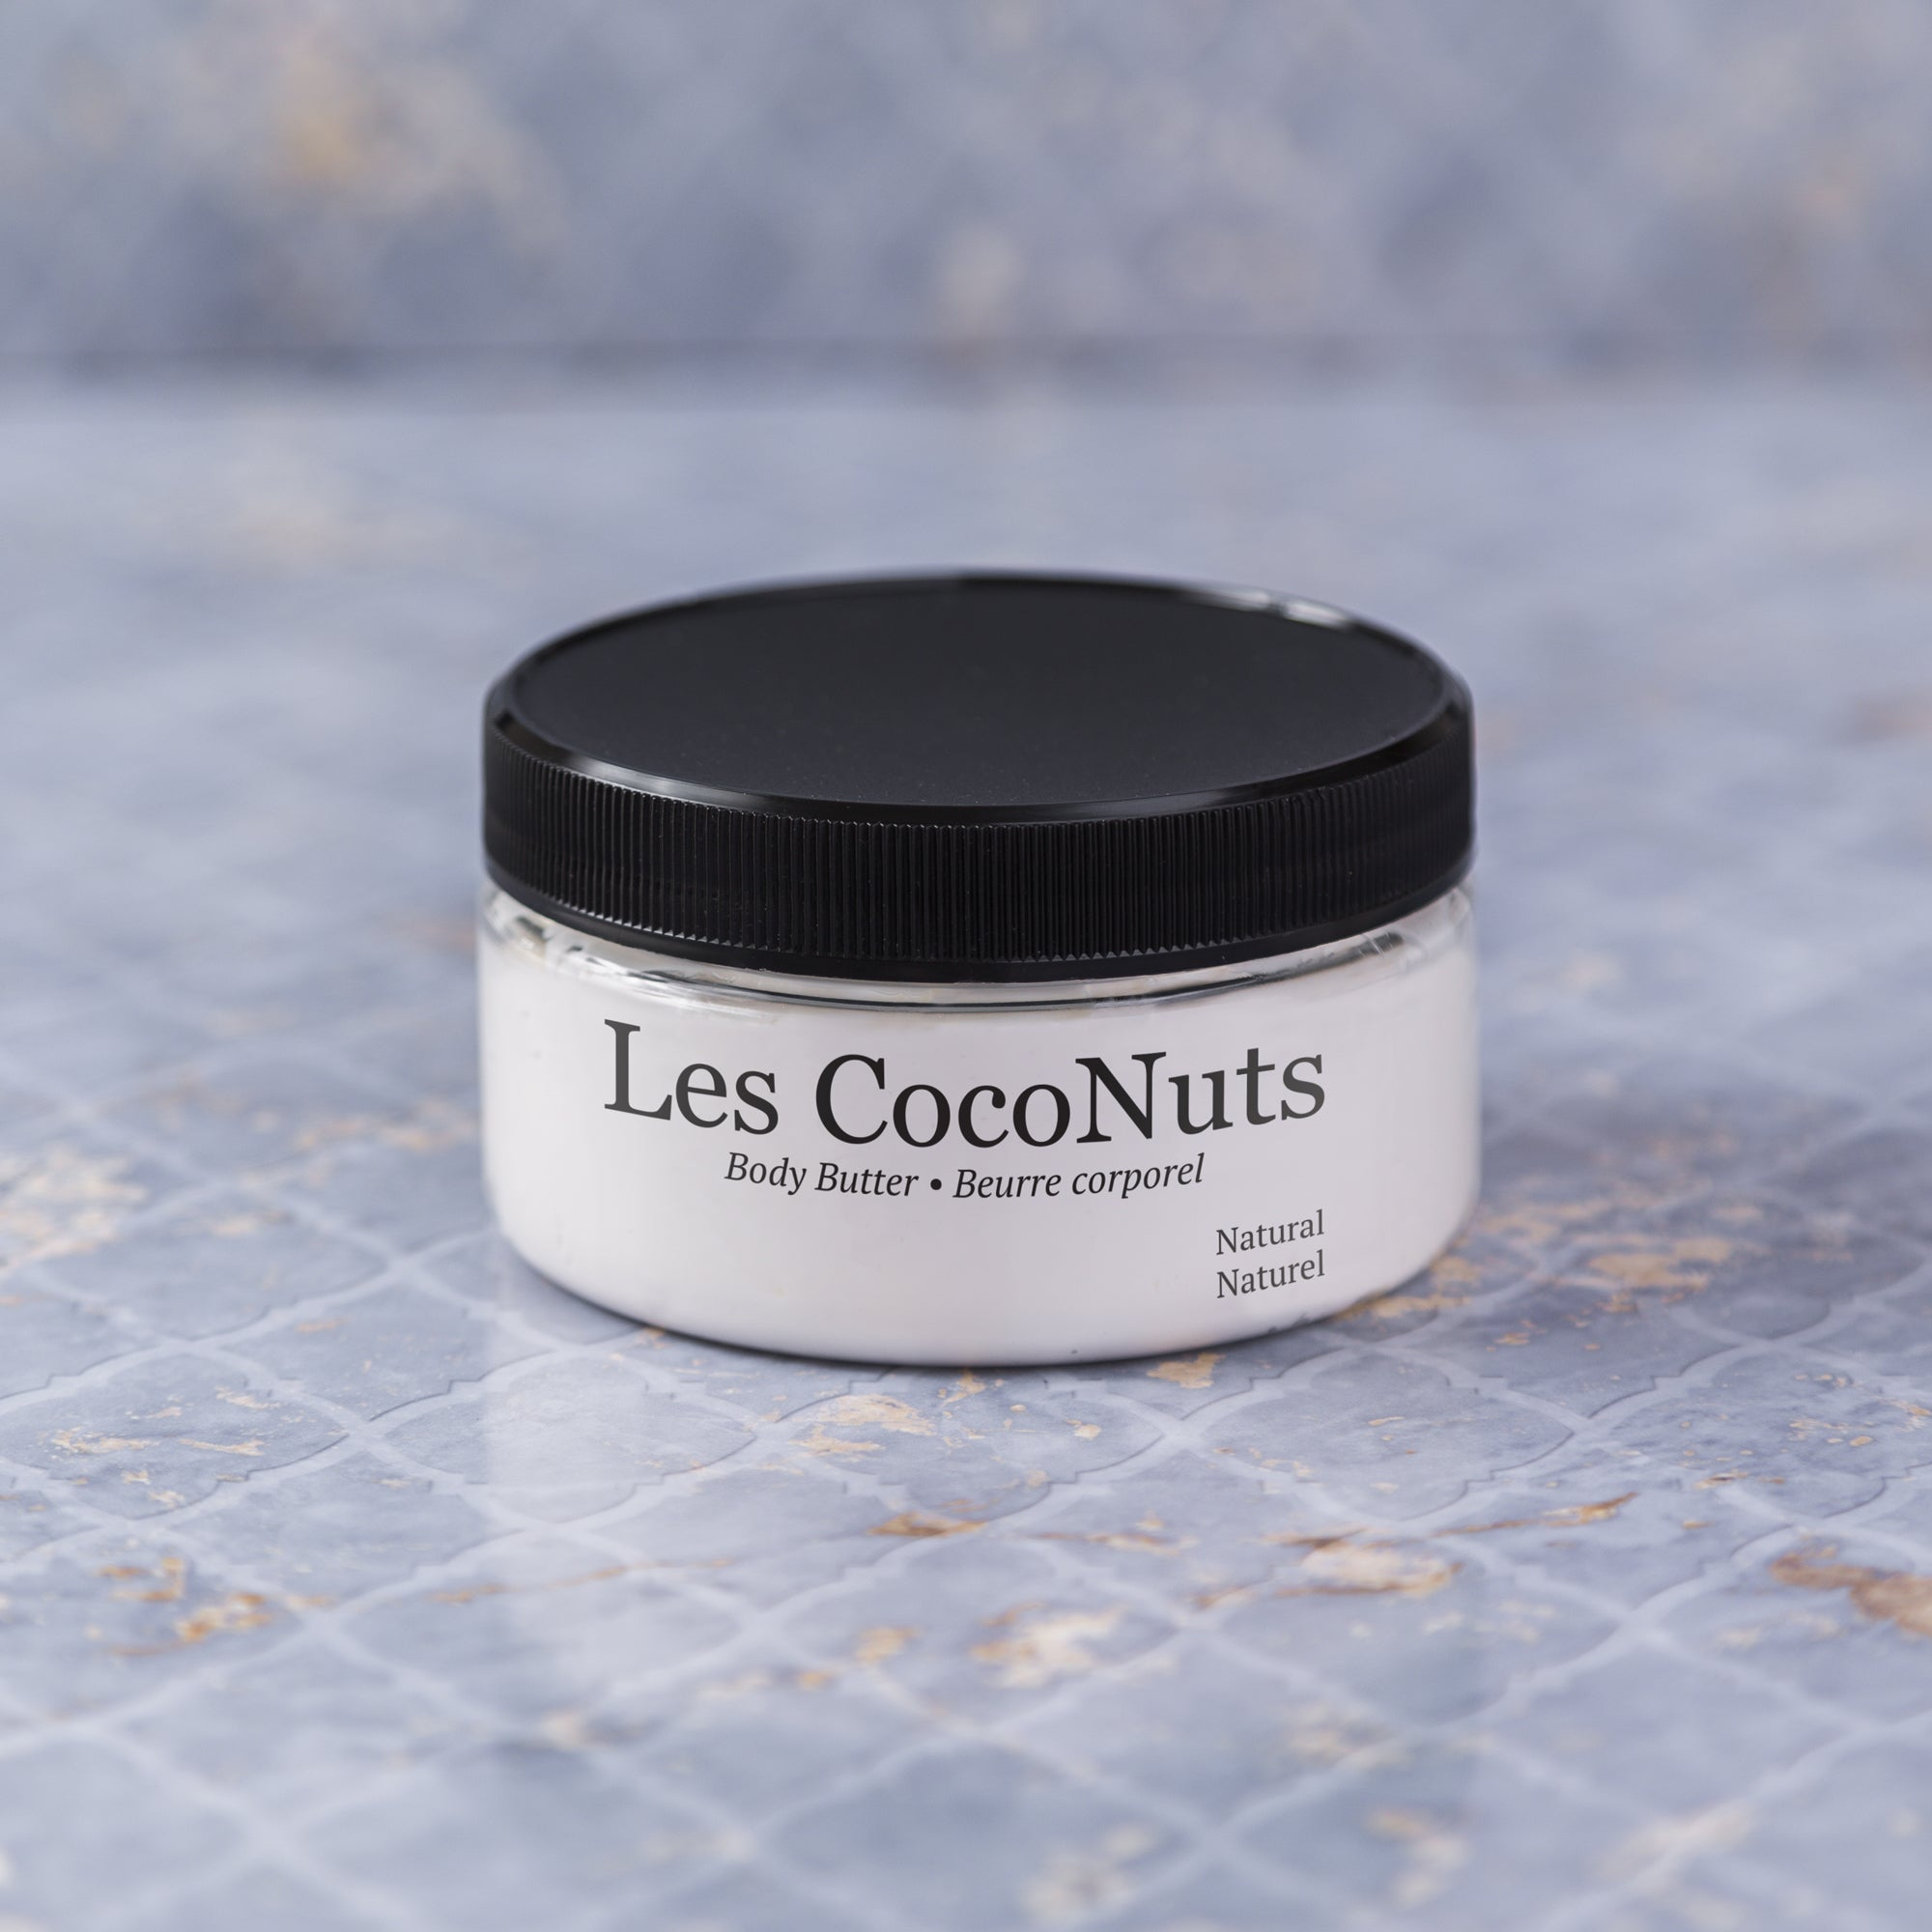 beurre corporel naturel Les CocoNuts body butter